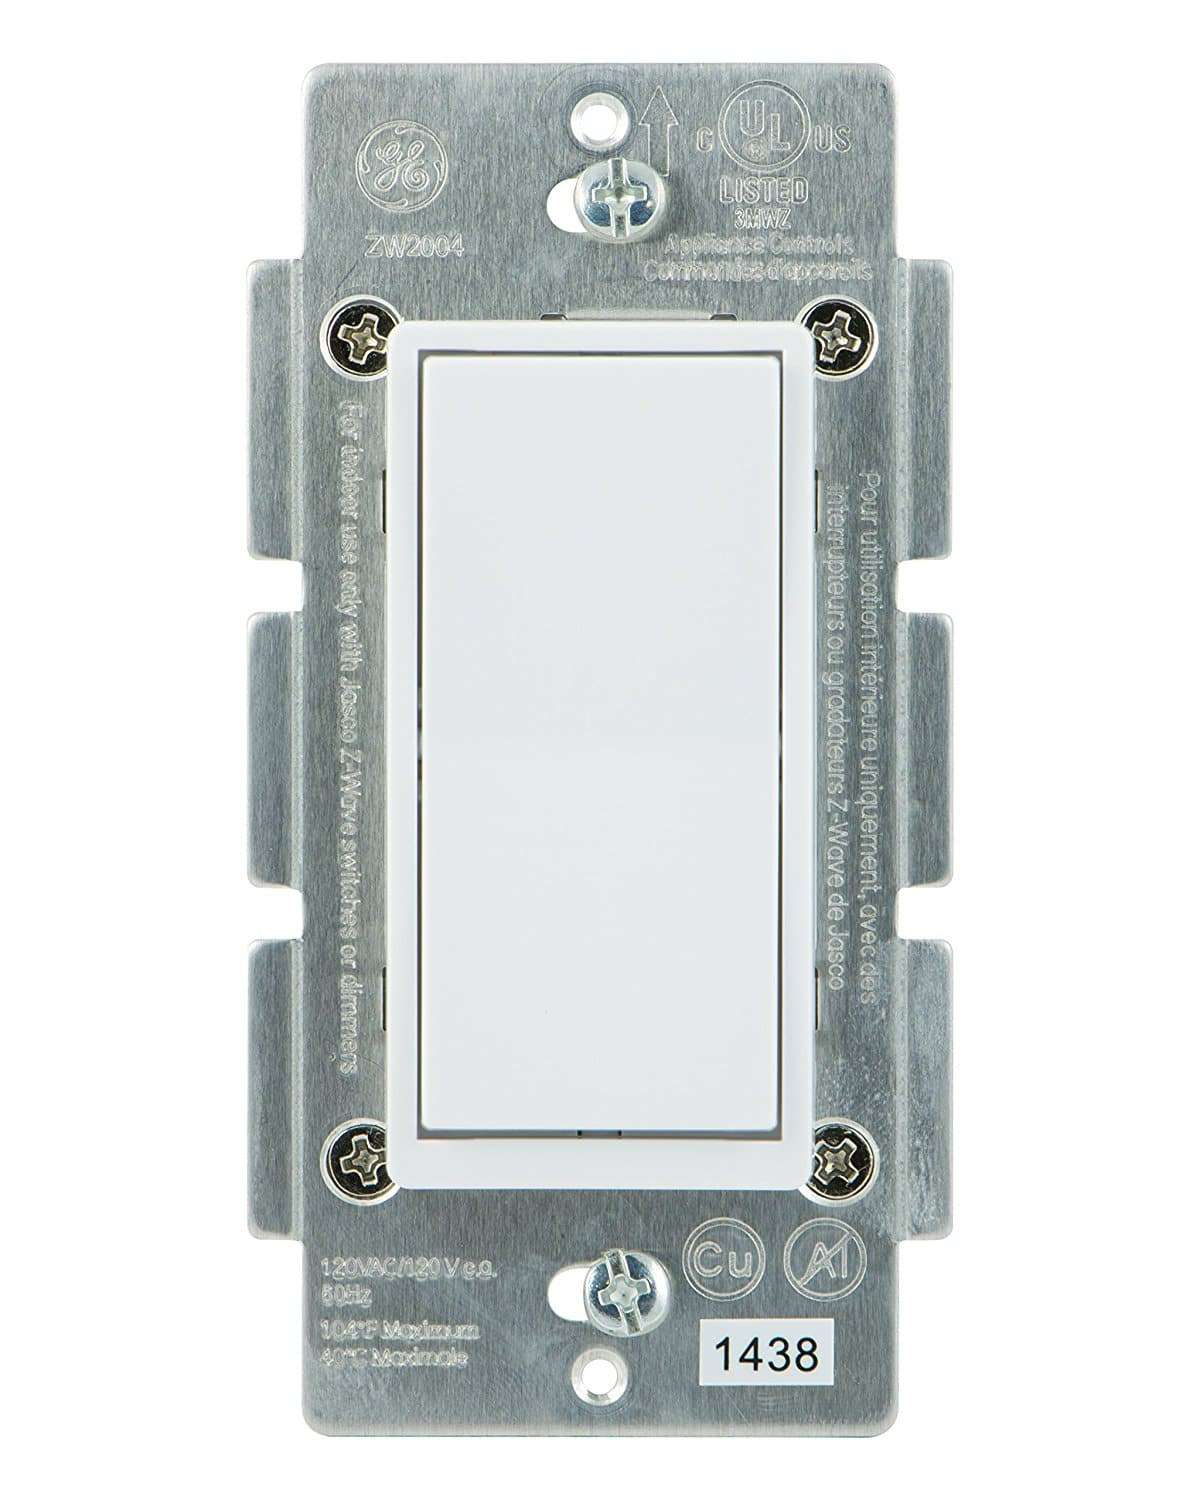 Ge Add On Paddle Switch For Z Wave Lighting Controls Wiring Light With Neutral Zwave Home Deal Image